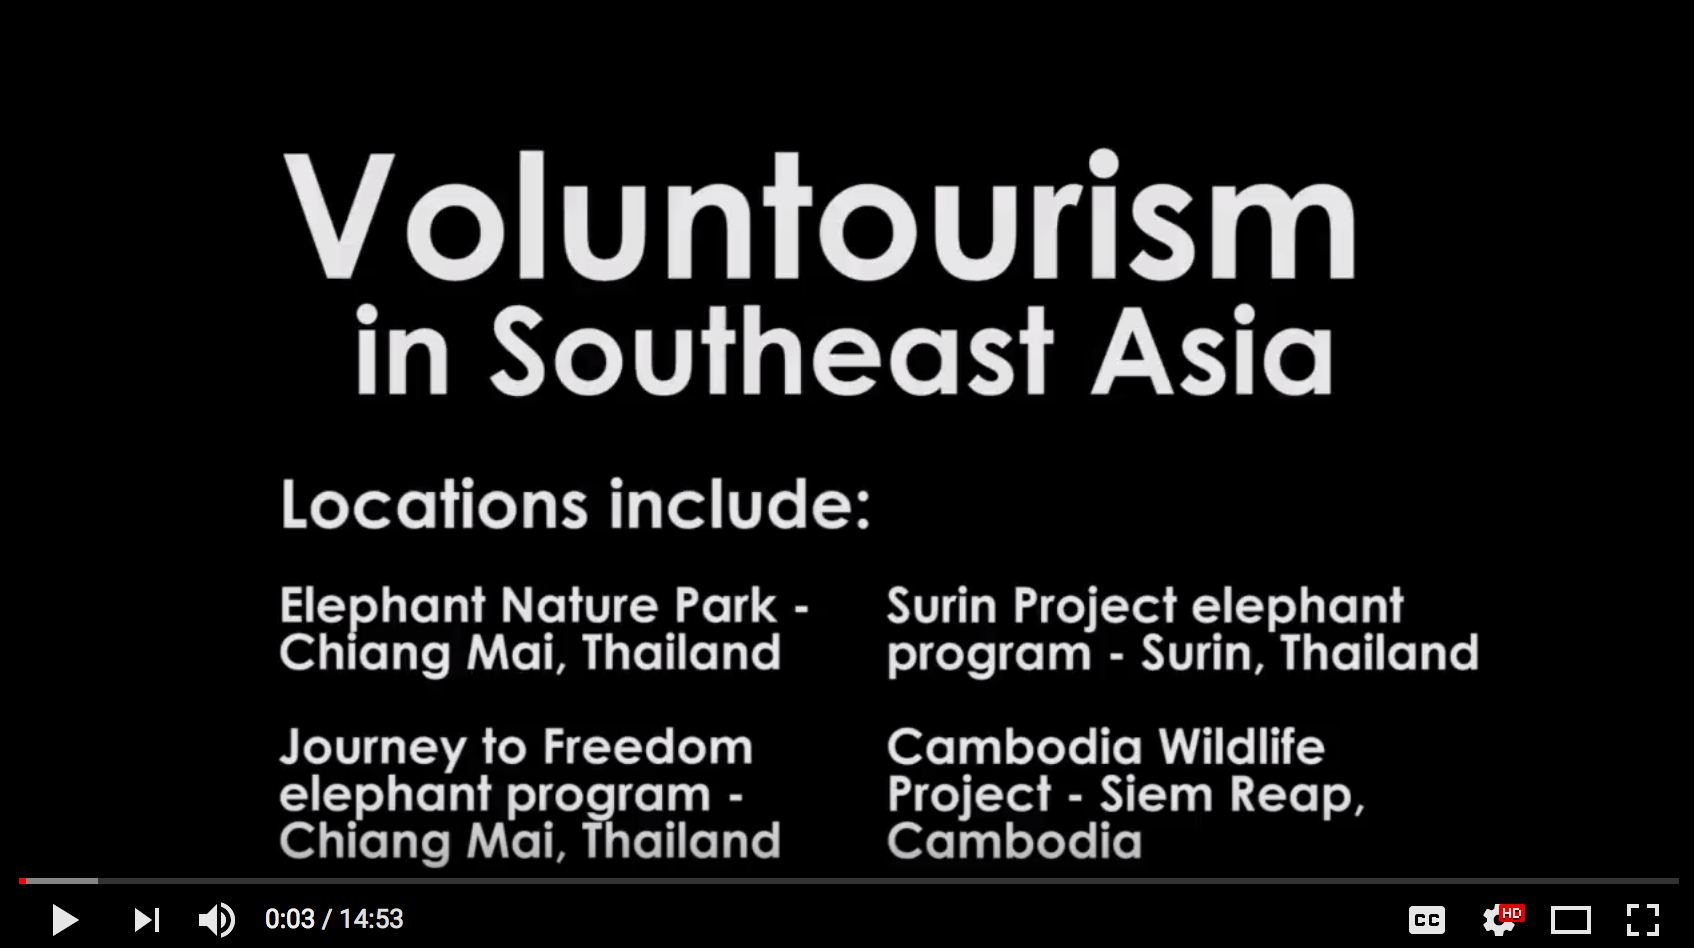 "Volunteer Tourism in Southeast Asia - Could worldwide tourism adopt a system for tourists that makes the ethical, environmental, and social impact more measurable, apparent, and accessible?""Due to the complexity of the tourism industry and its proliferation in a wide variety of areas, it is a challenge for destinations to reap the benefits of tourism development while also curbing the disadvantages of uncontrolled growth and development"""